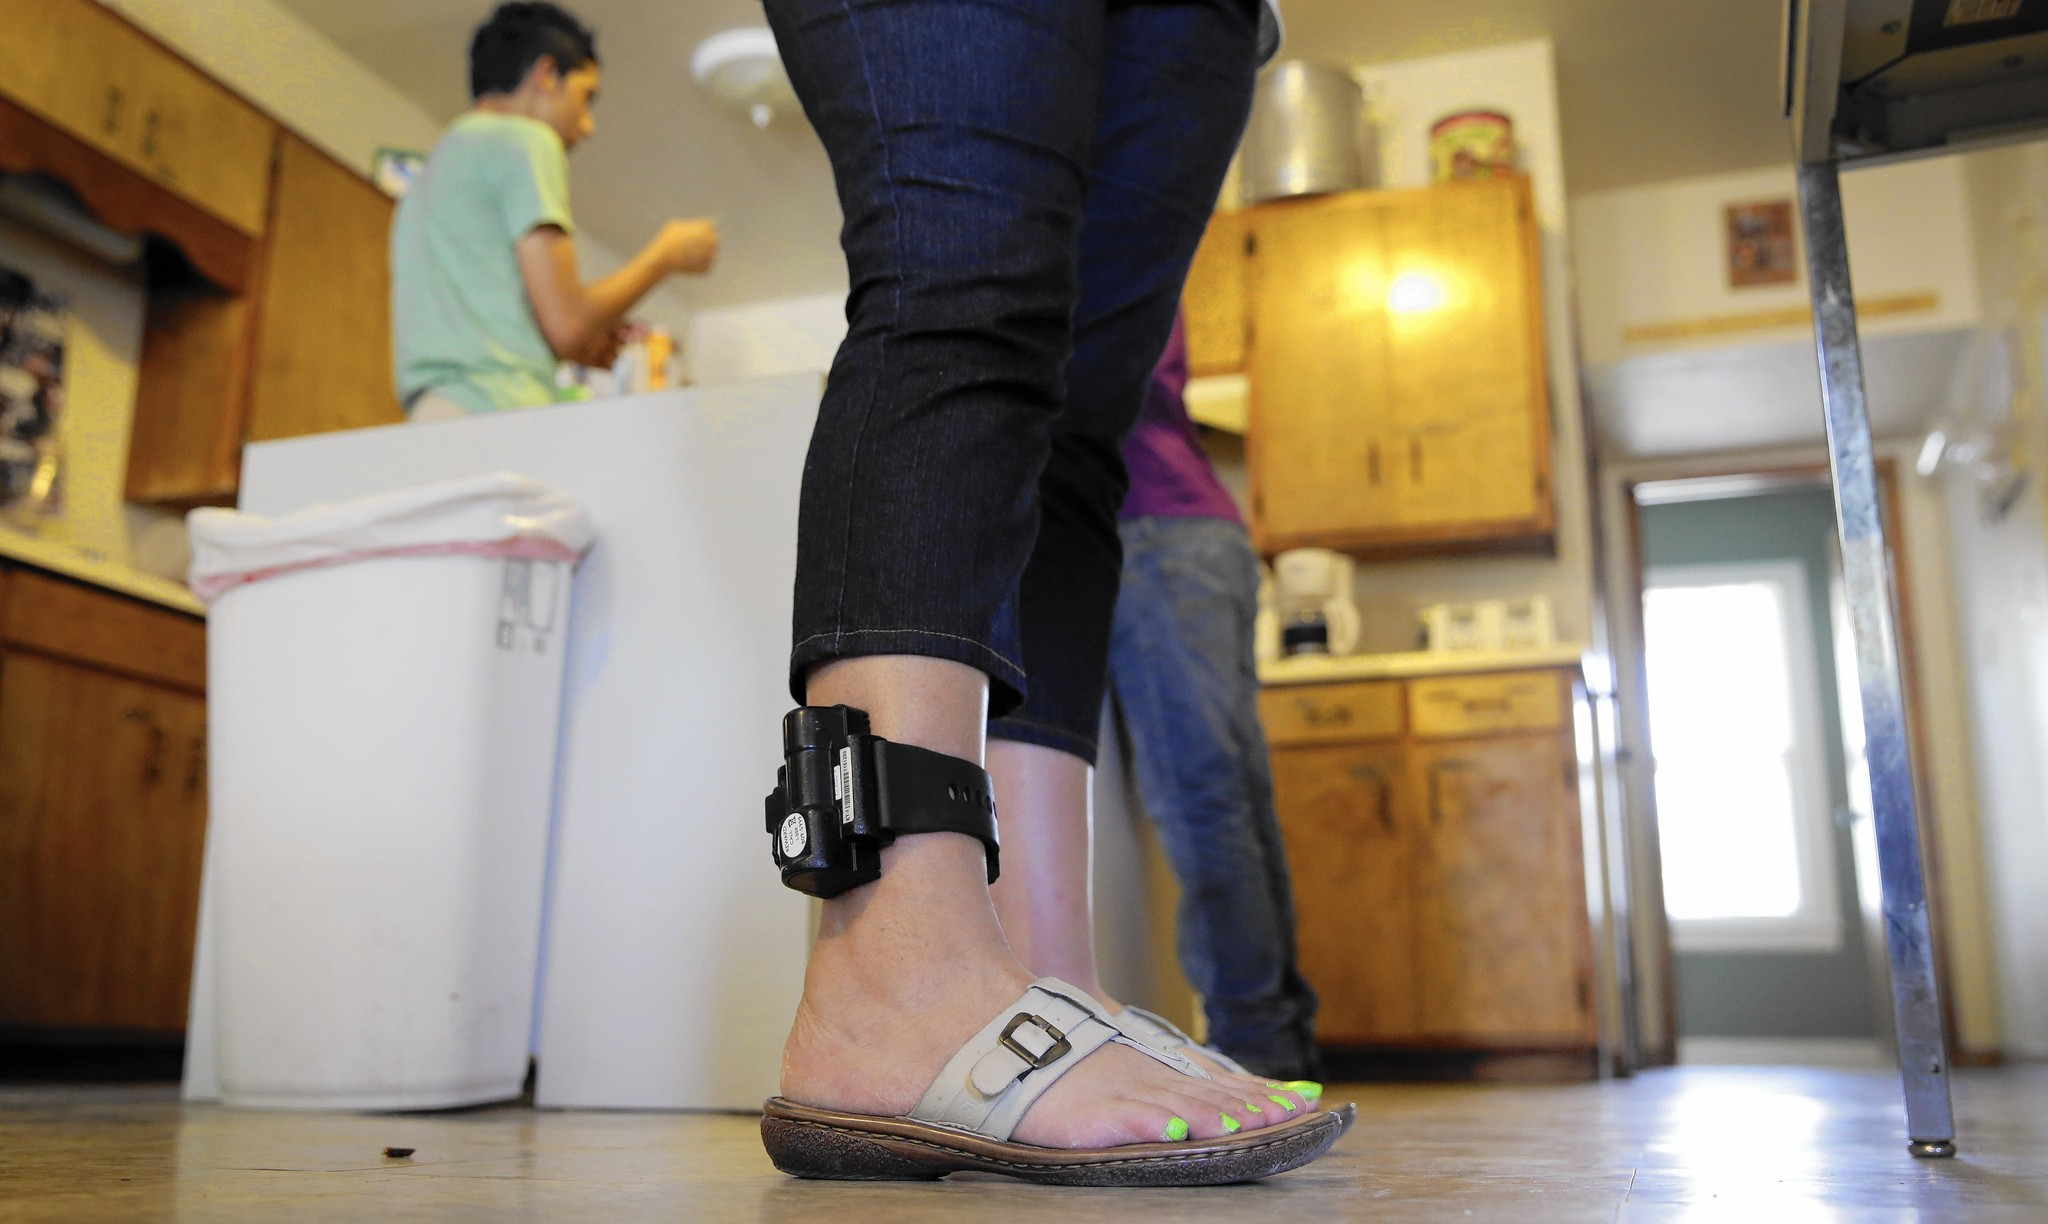 Immigrants Object To Growing Use Of Ankle Monitors After Detention  La  Times